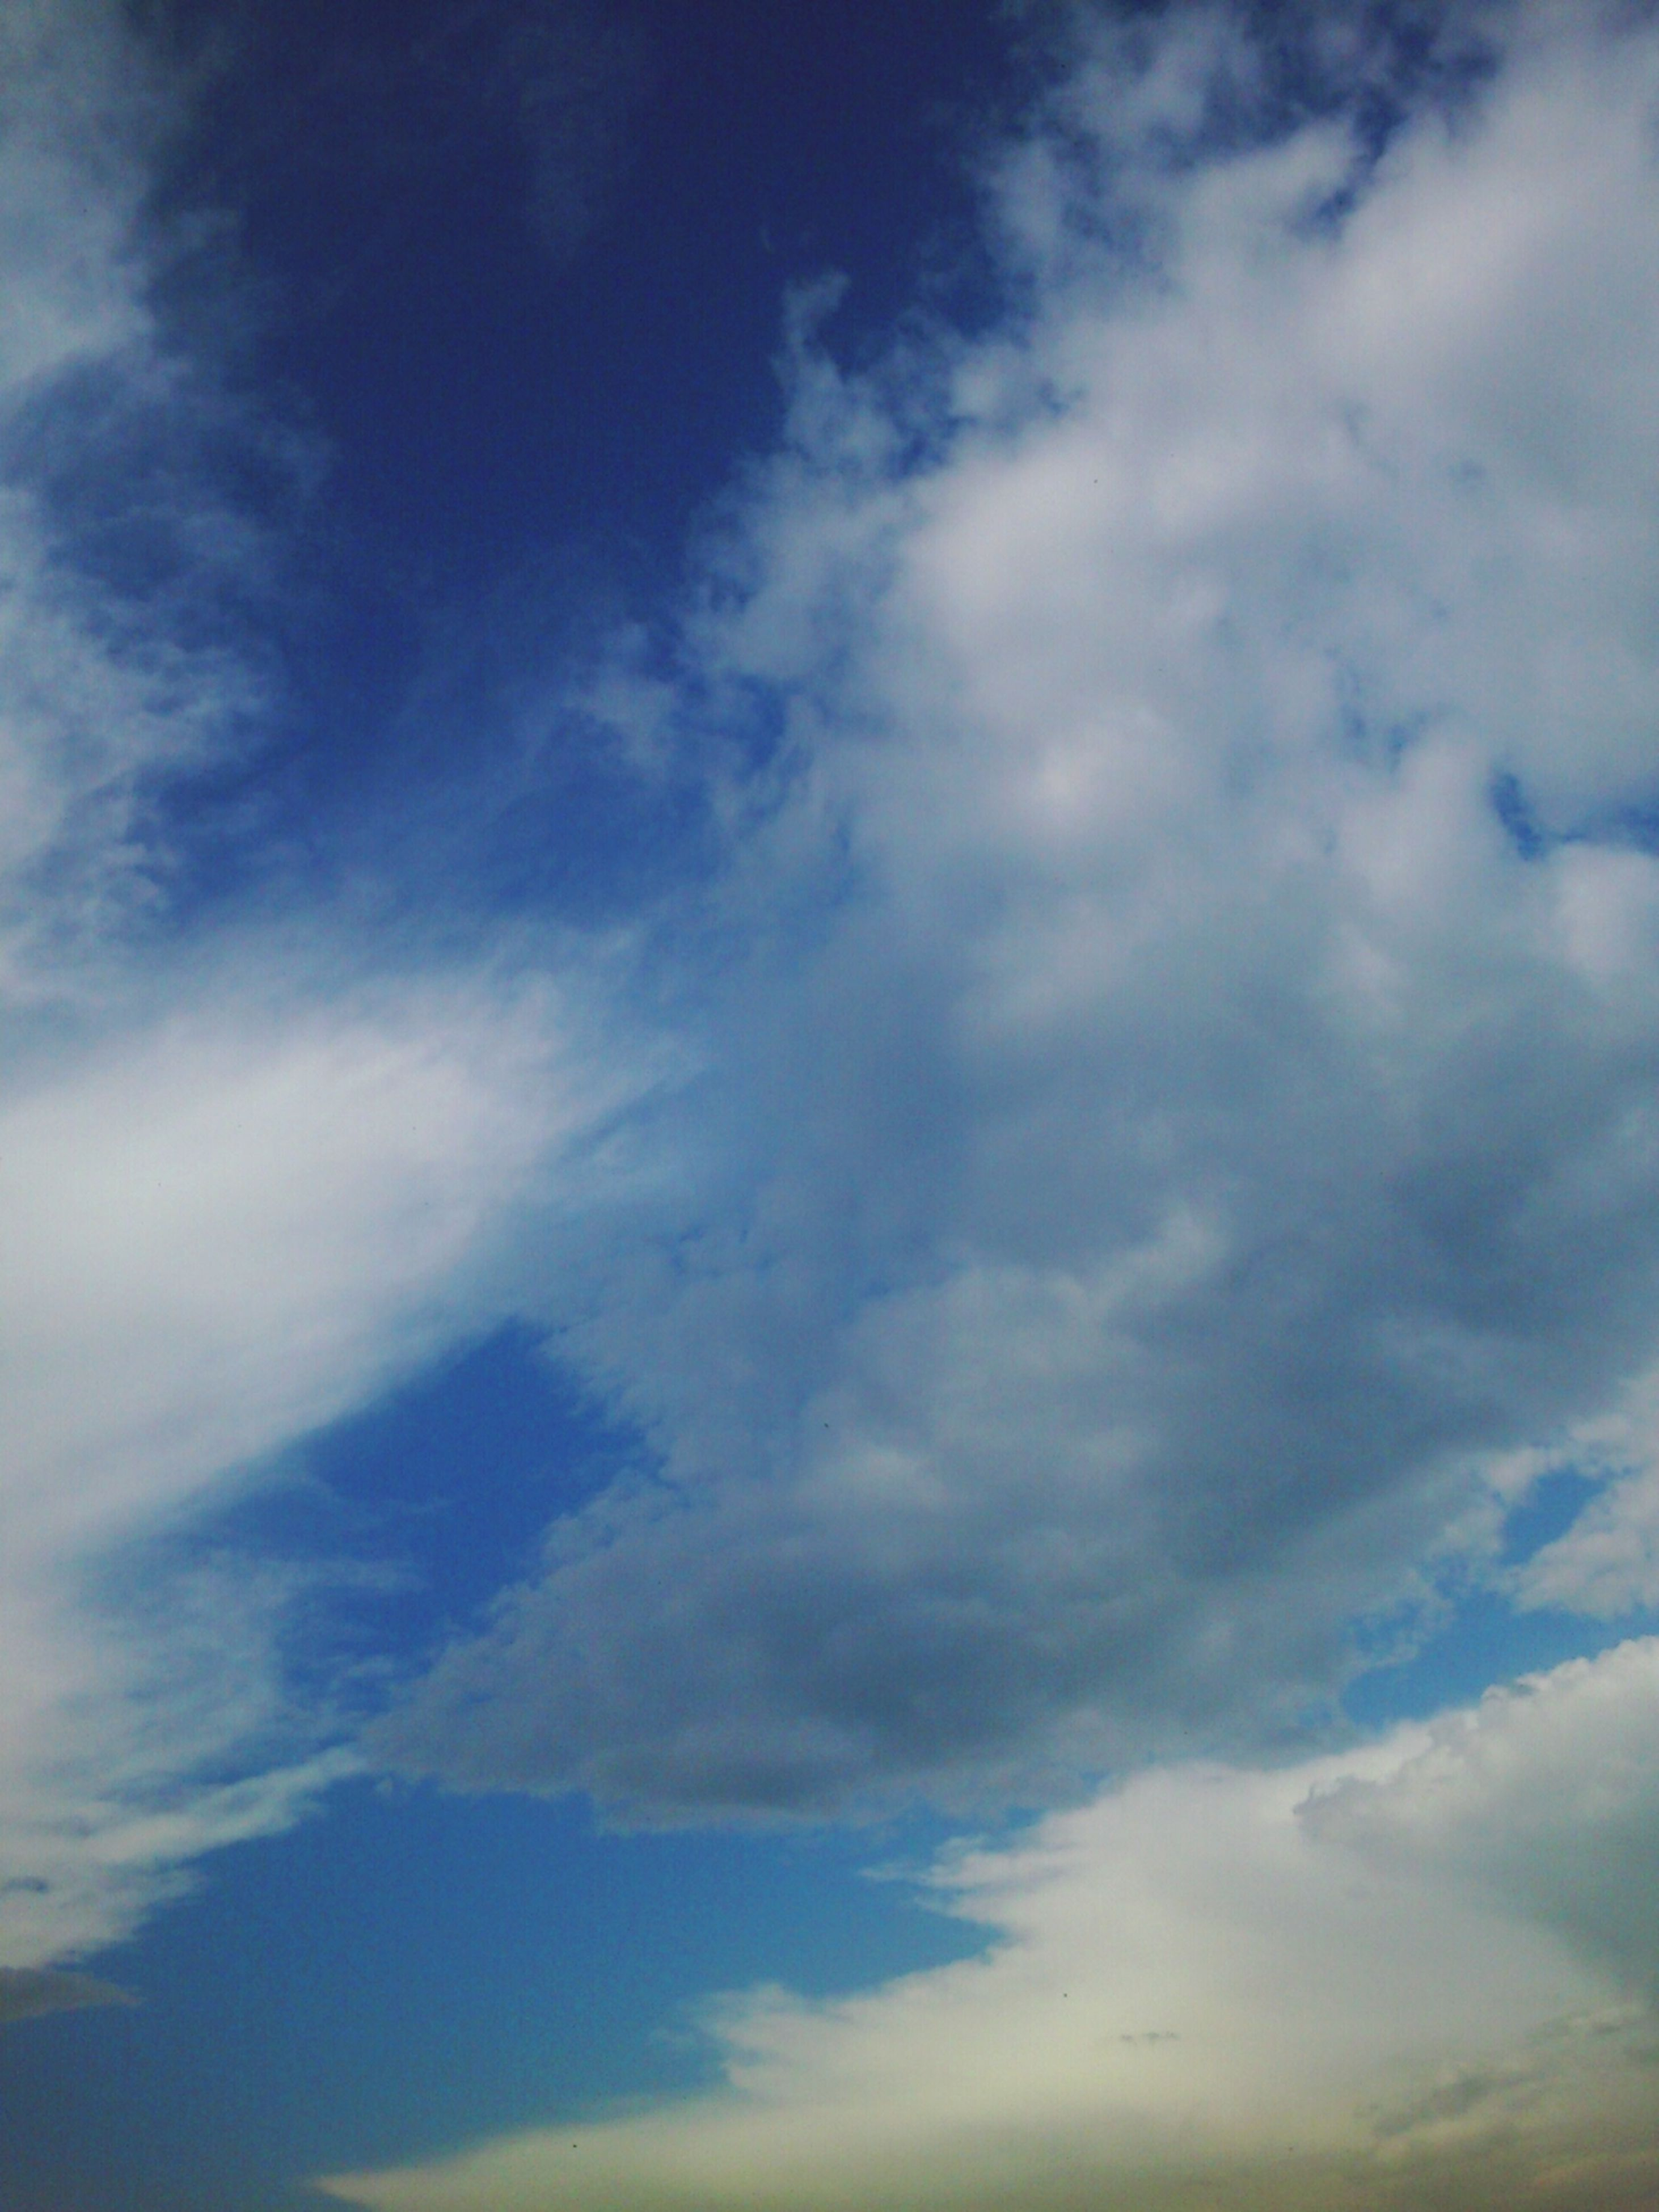 sky, cloud - sky, low angle view, beauty in nature, tranquility, cloudy, scenics, tranquil scene, nature, cloud, sky only, blue, backgrounds, cloudscape, full frame, idyllic, outdoors, no people, day, white color